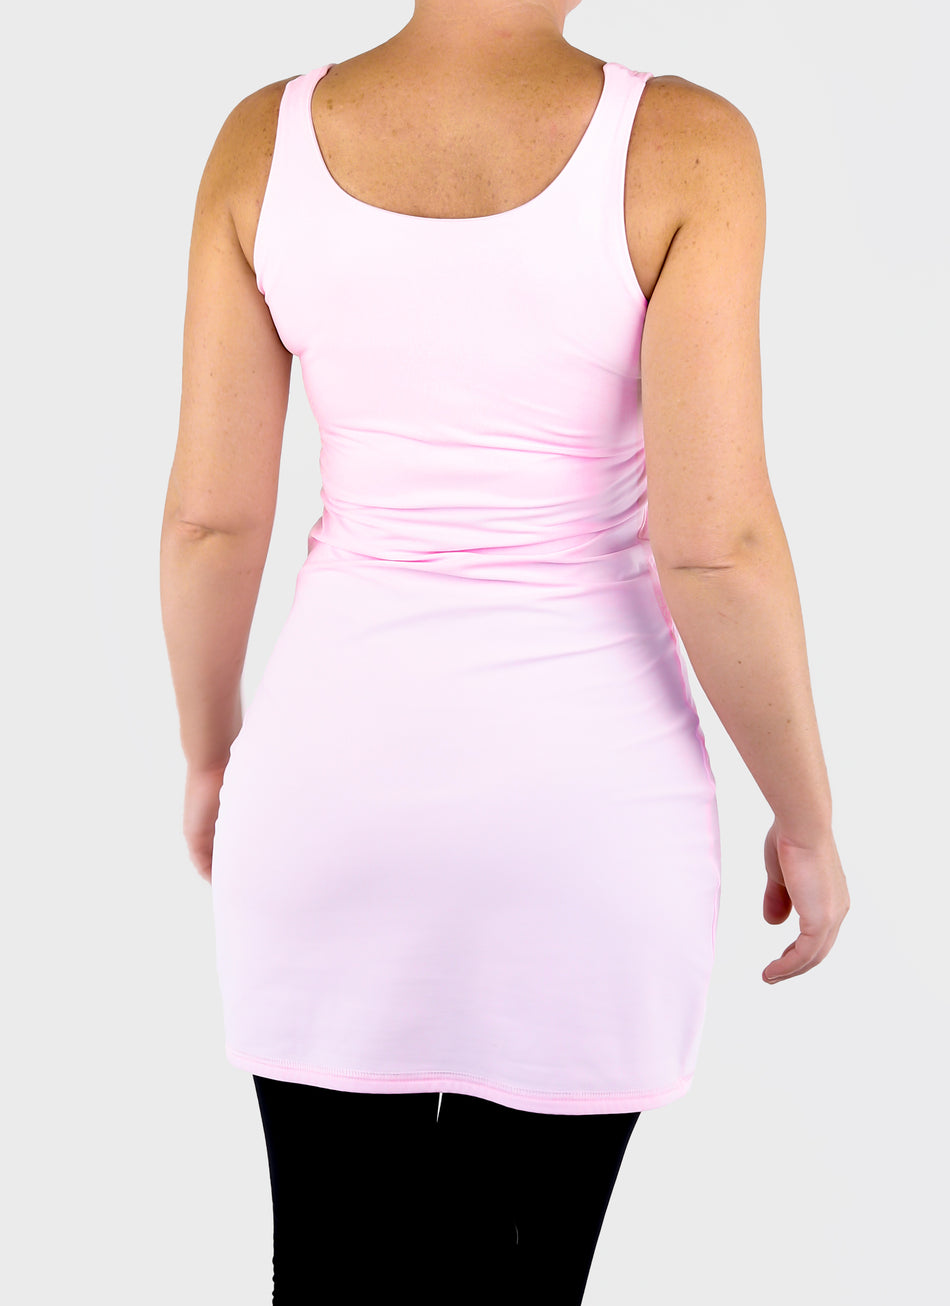 Perfect Fit Extra Long Basic Baby Pink Tank Tunic Top for Leggings - 5